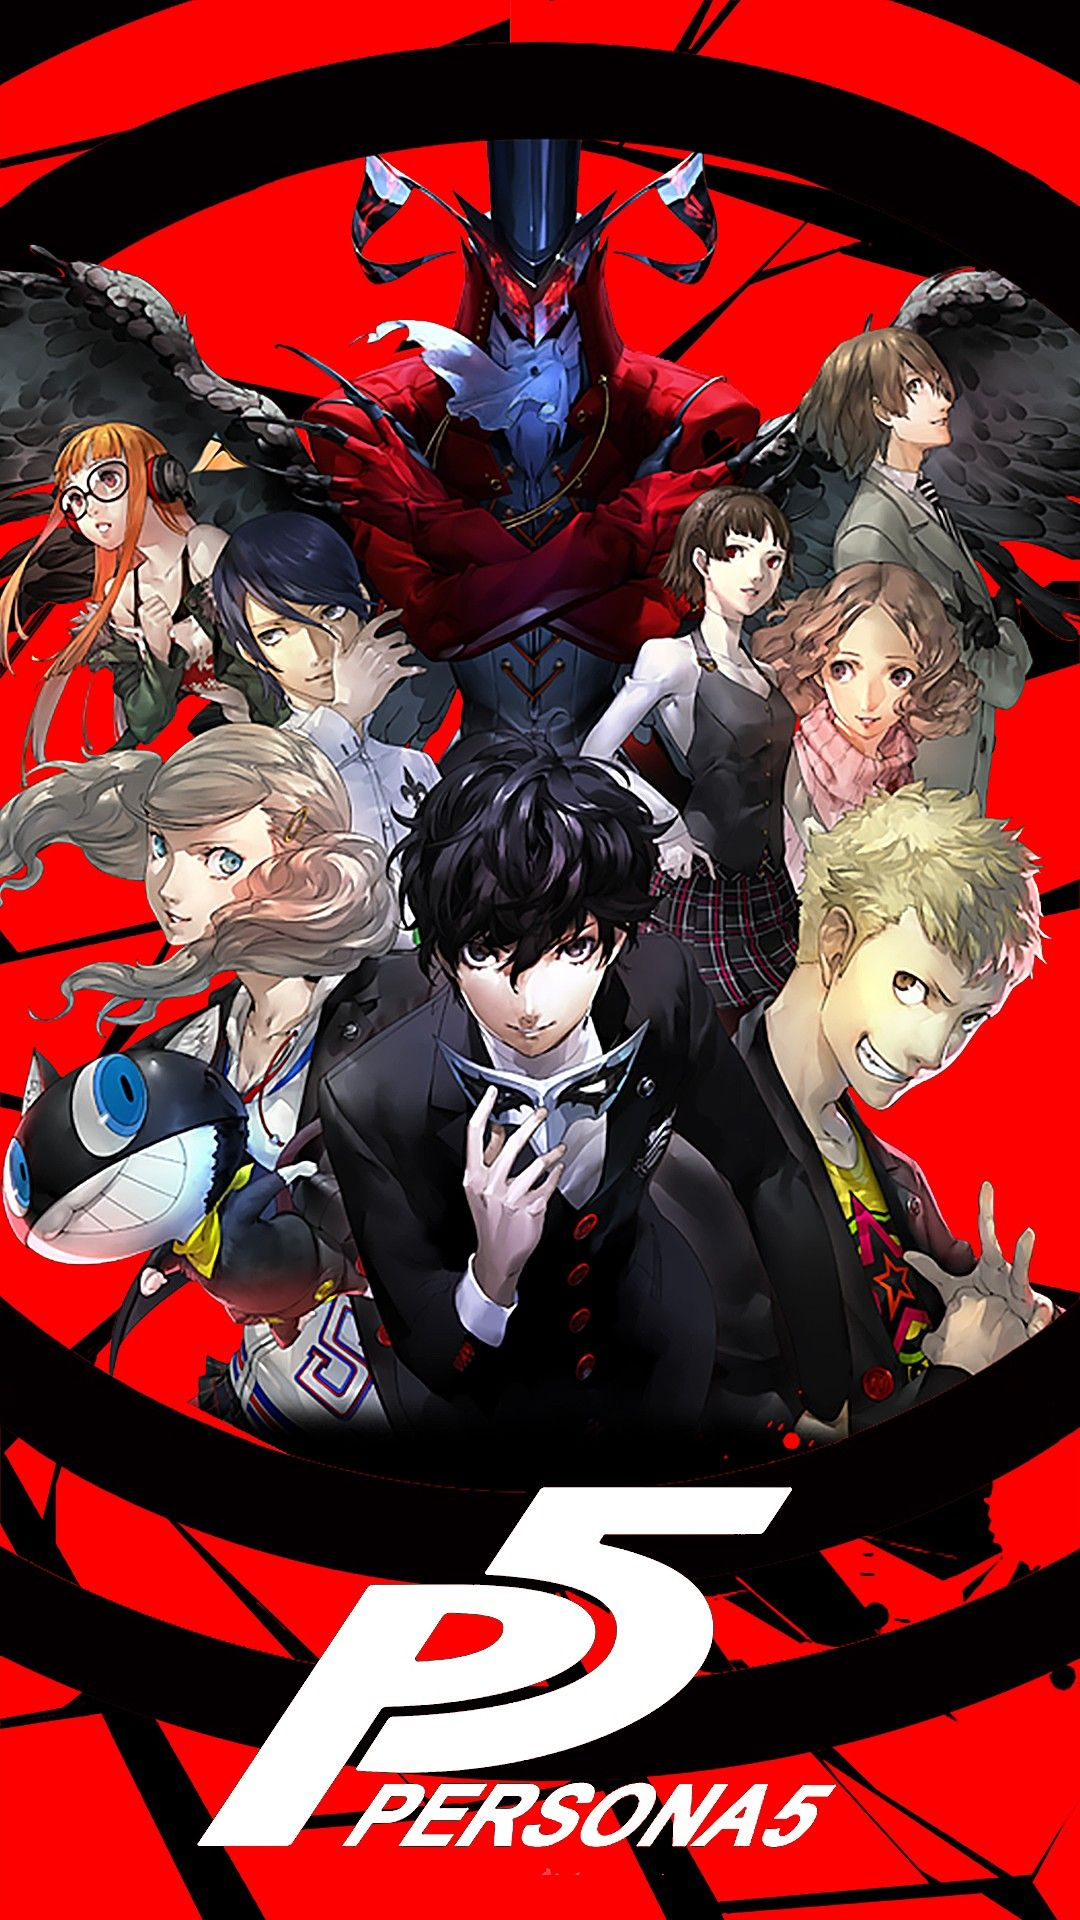 Pin By Wolf Girl On Phone Wallpaper Persona 5 Anime Persona 5 Persona